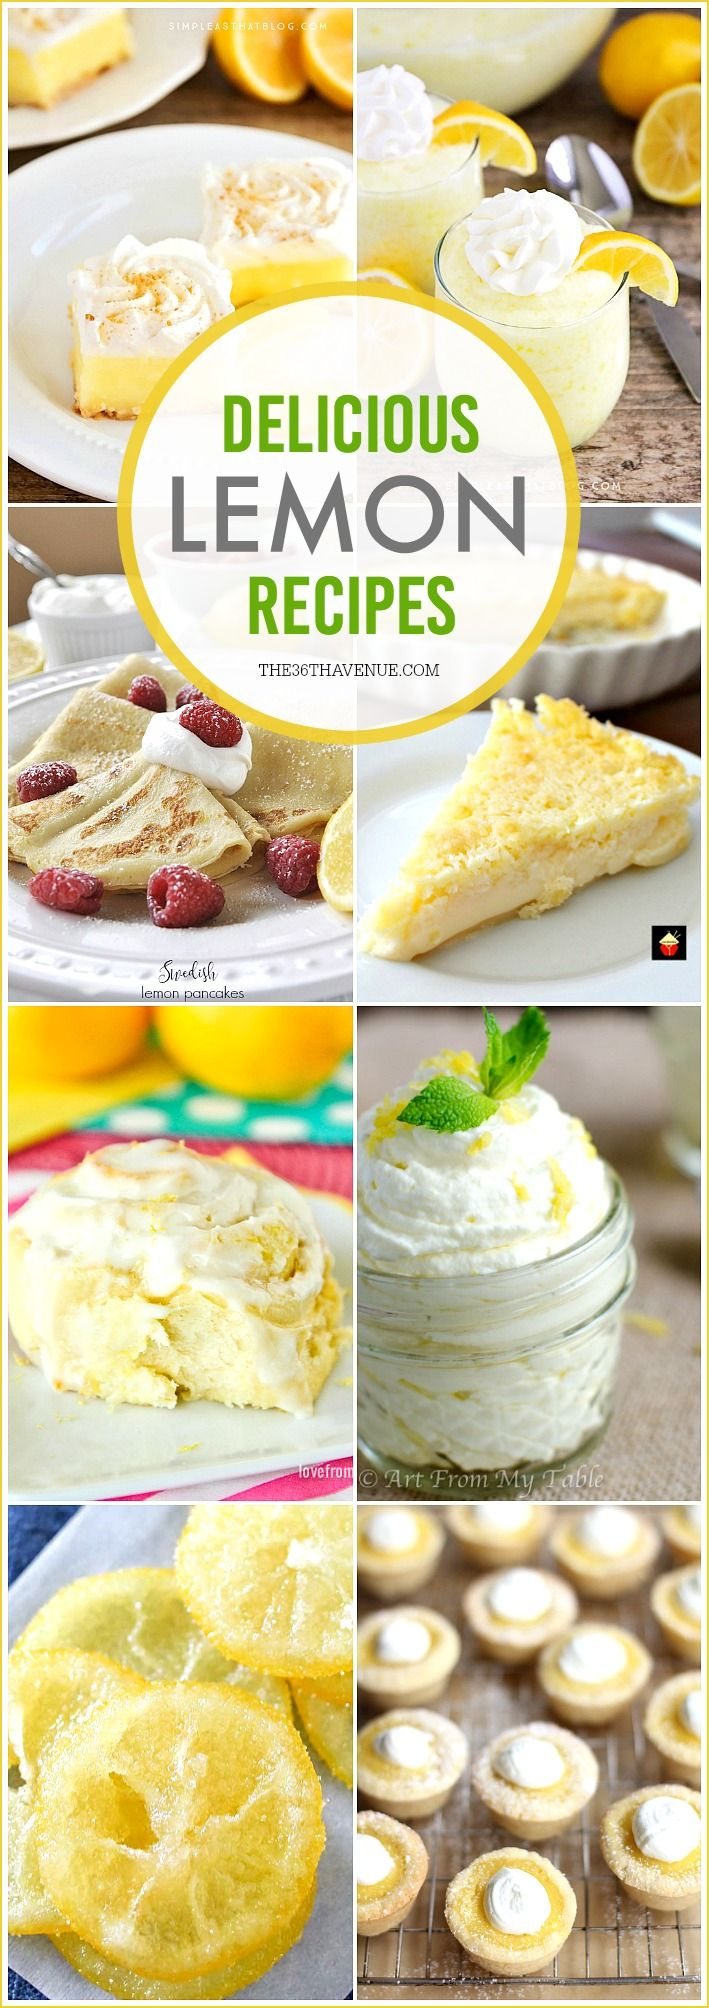 These Lemon Recipes are easy to make and super delicious. These lemon desserts are so good, and perfect for any occasion... Give them a try!